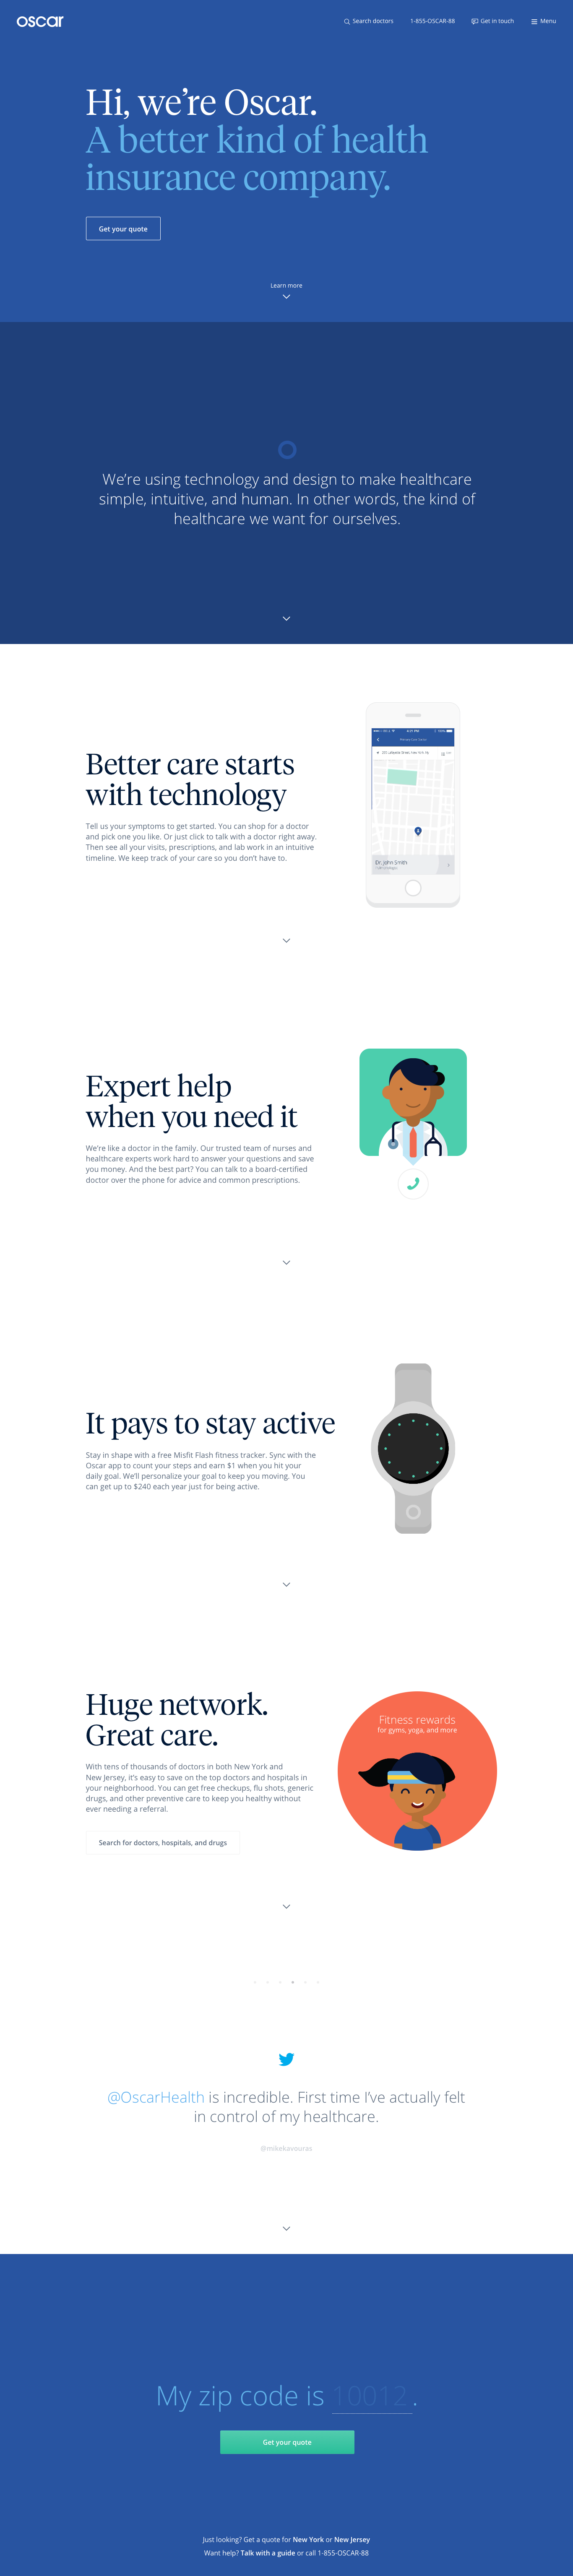 Oscar Health Insurance Tech Design And Experience Really Smart